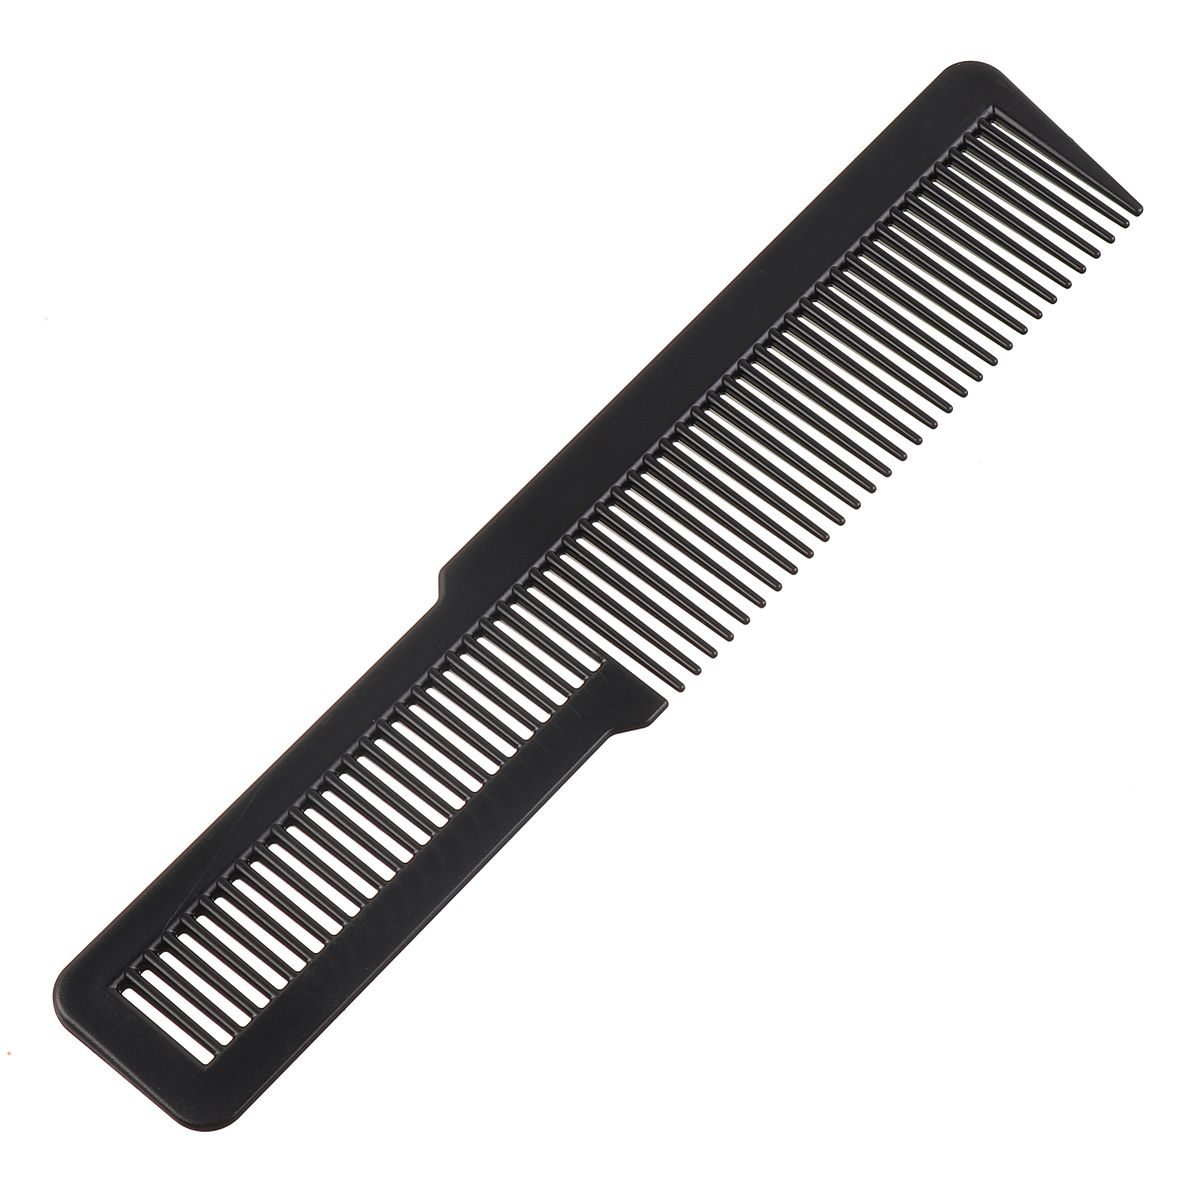 1pc Pro Salon Hairdressing Plastic Hair Clipper Comb New Design Durable Salon Hair Trimming Comb Hairdressing Tool